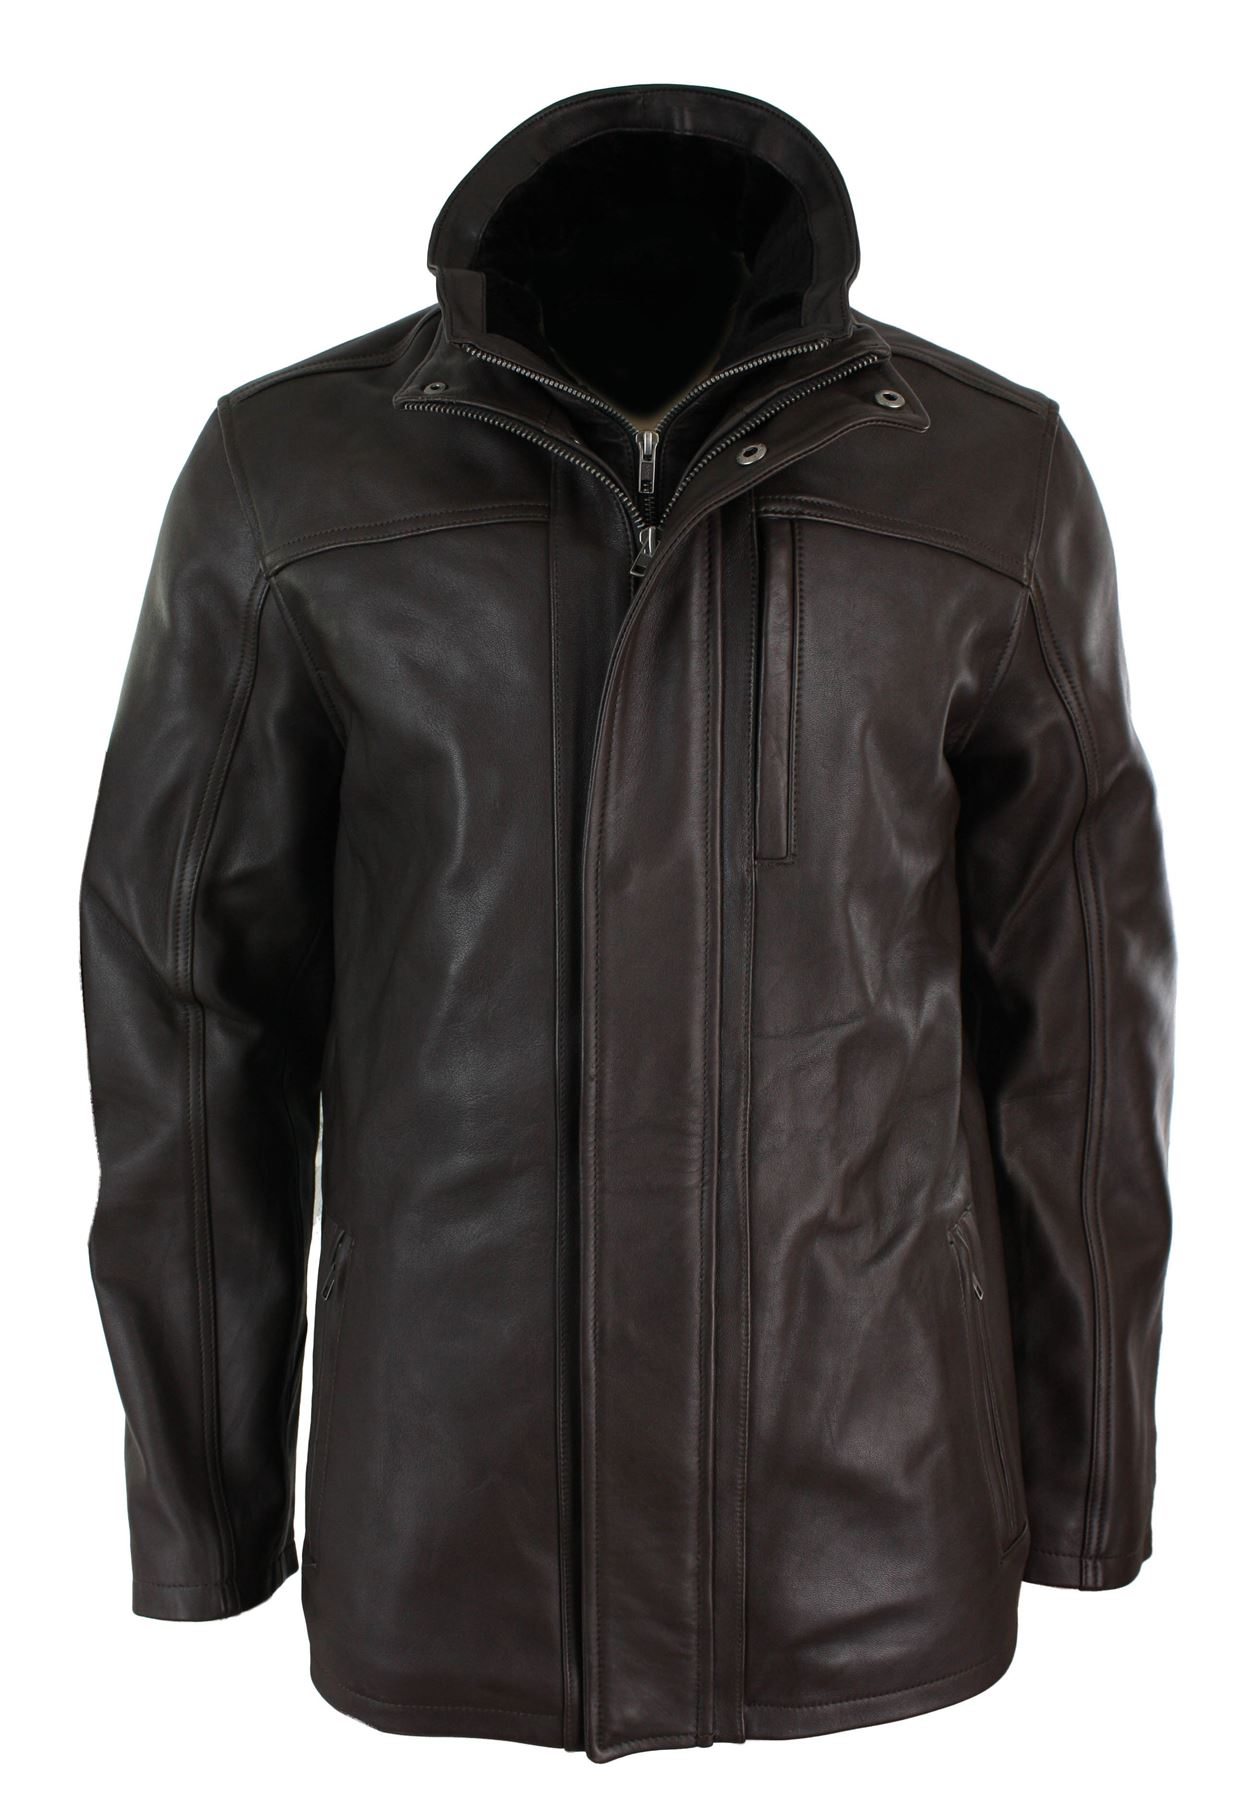 3 4 mens leather jacket